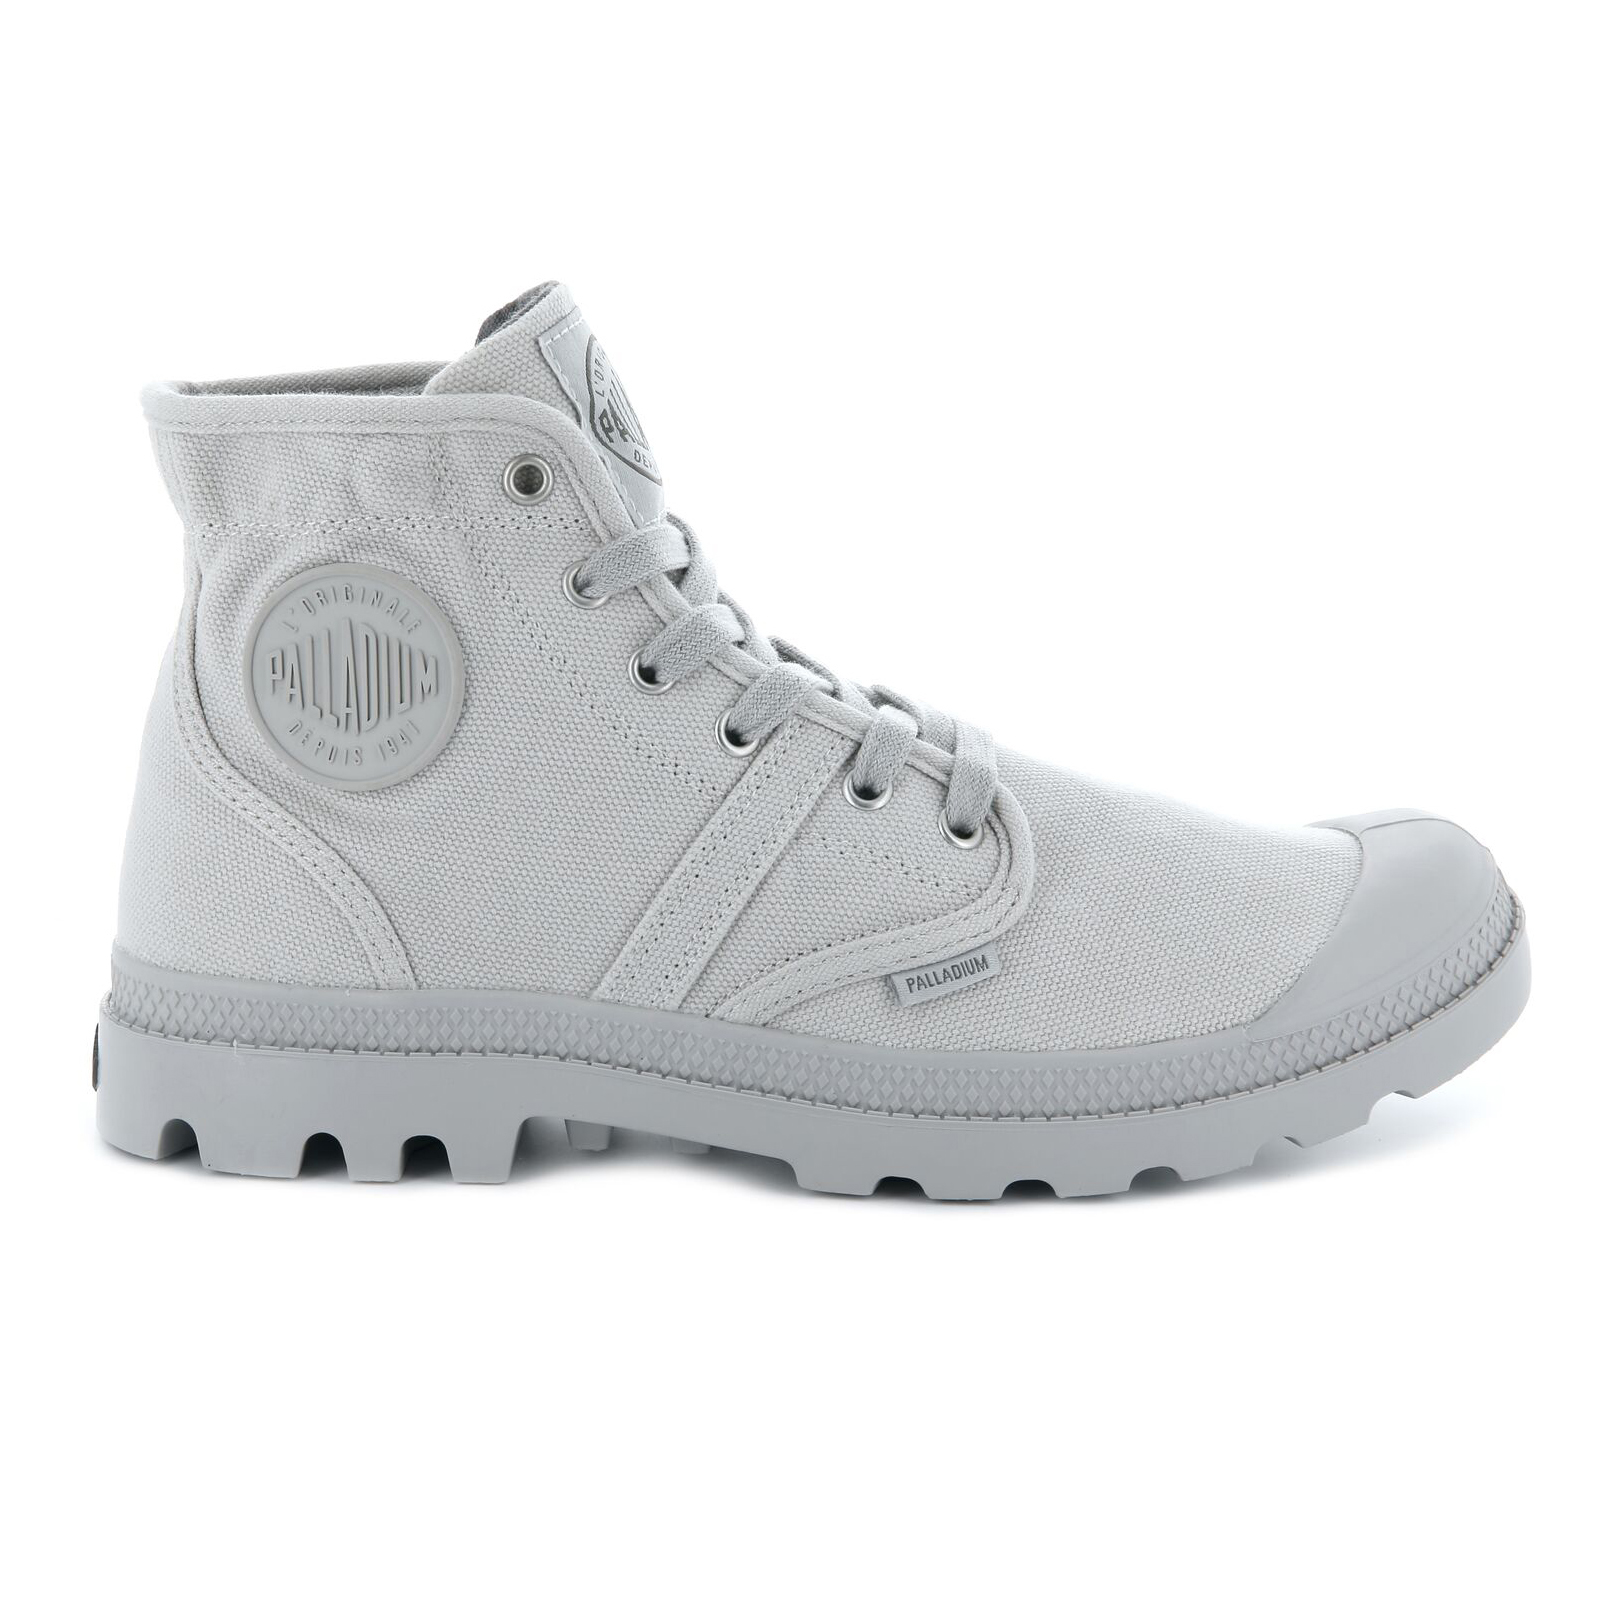 Palladium-Mens-Shoe-Pallabrouse-New-Designer-Walking-High-Top-Canvas-Ankle-Boots thumbnail 27